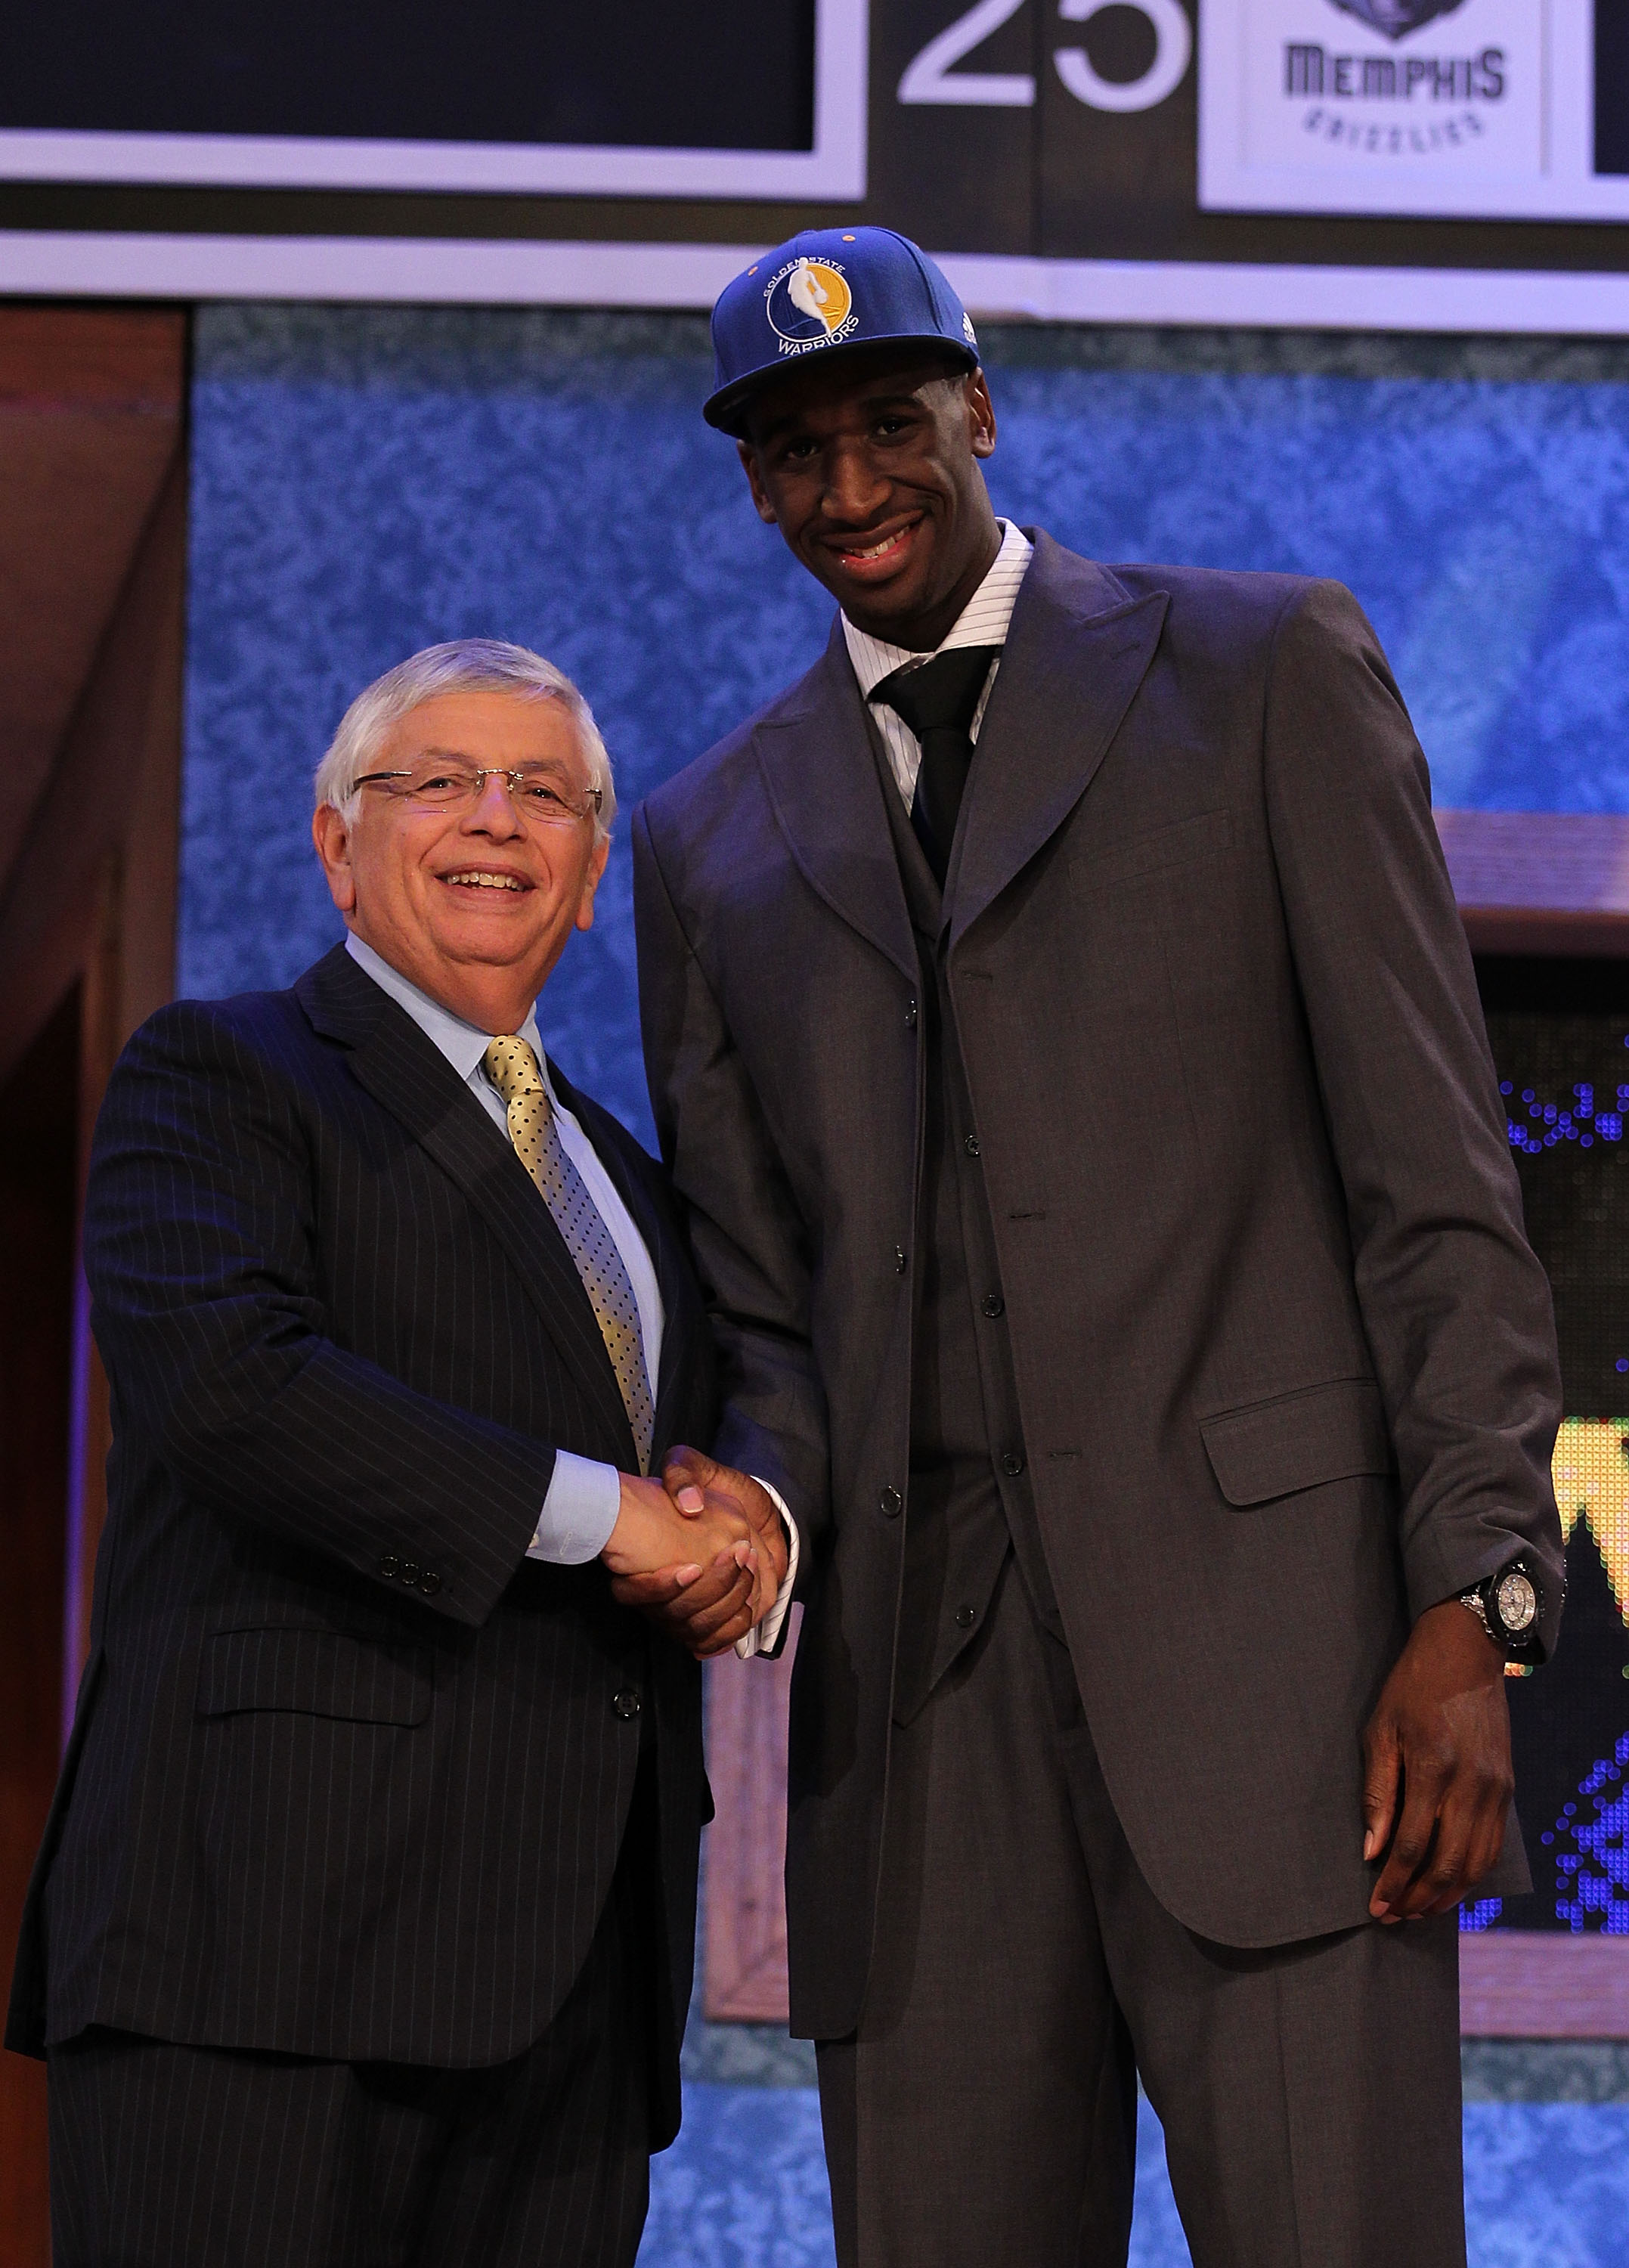 Ekpe Udoh was drafted to help the team's interior defense and rebounding.